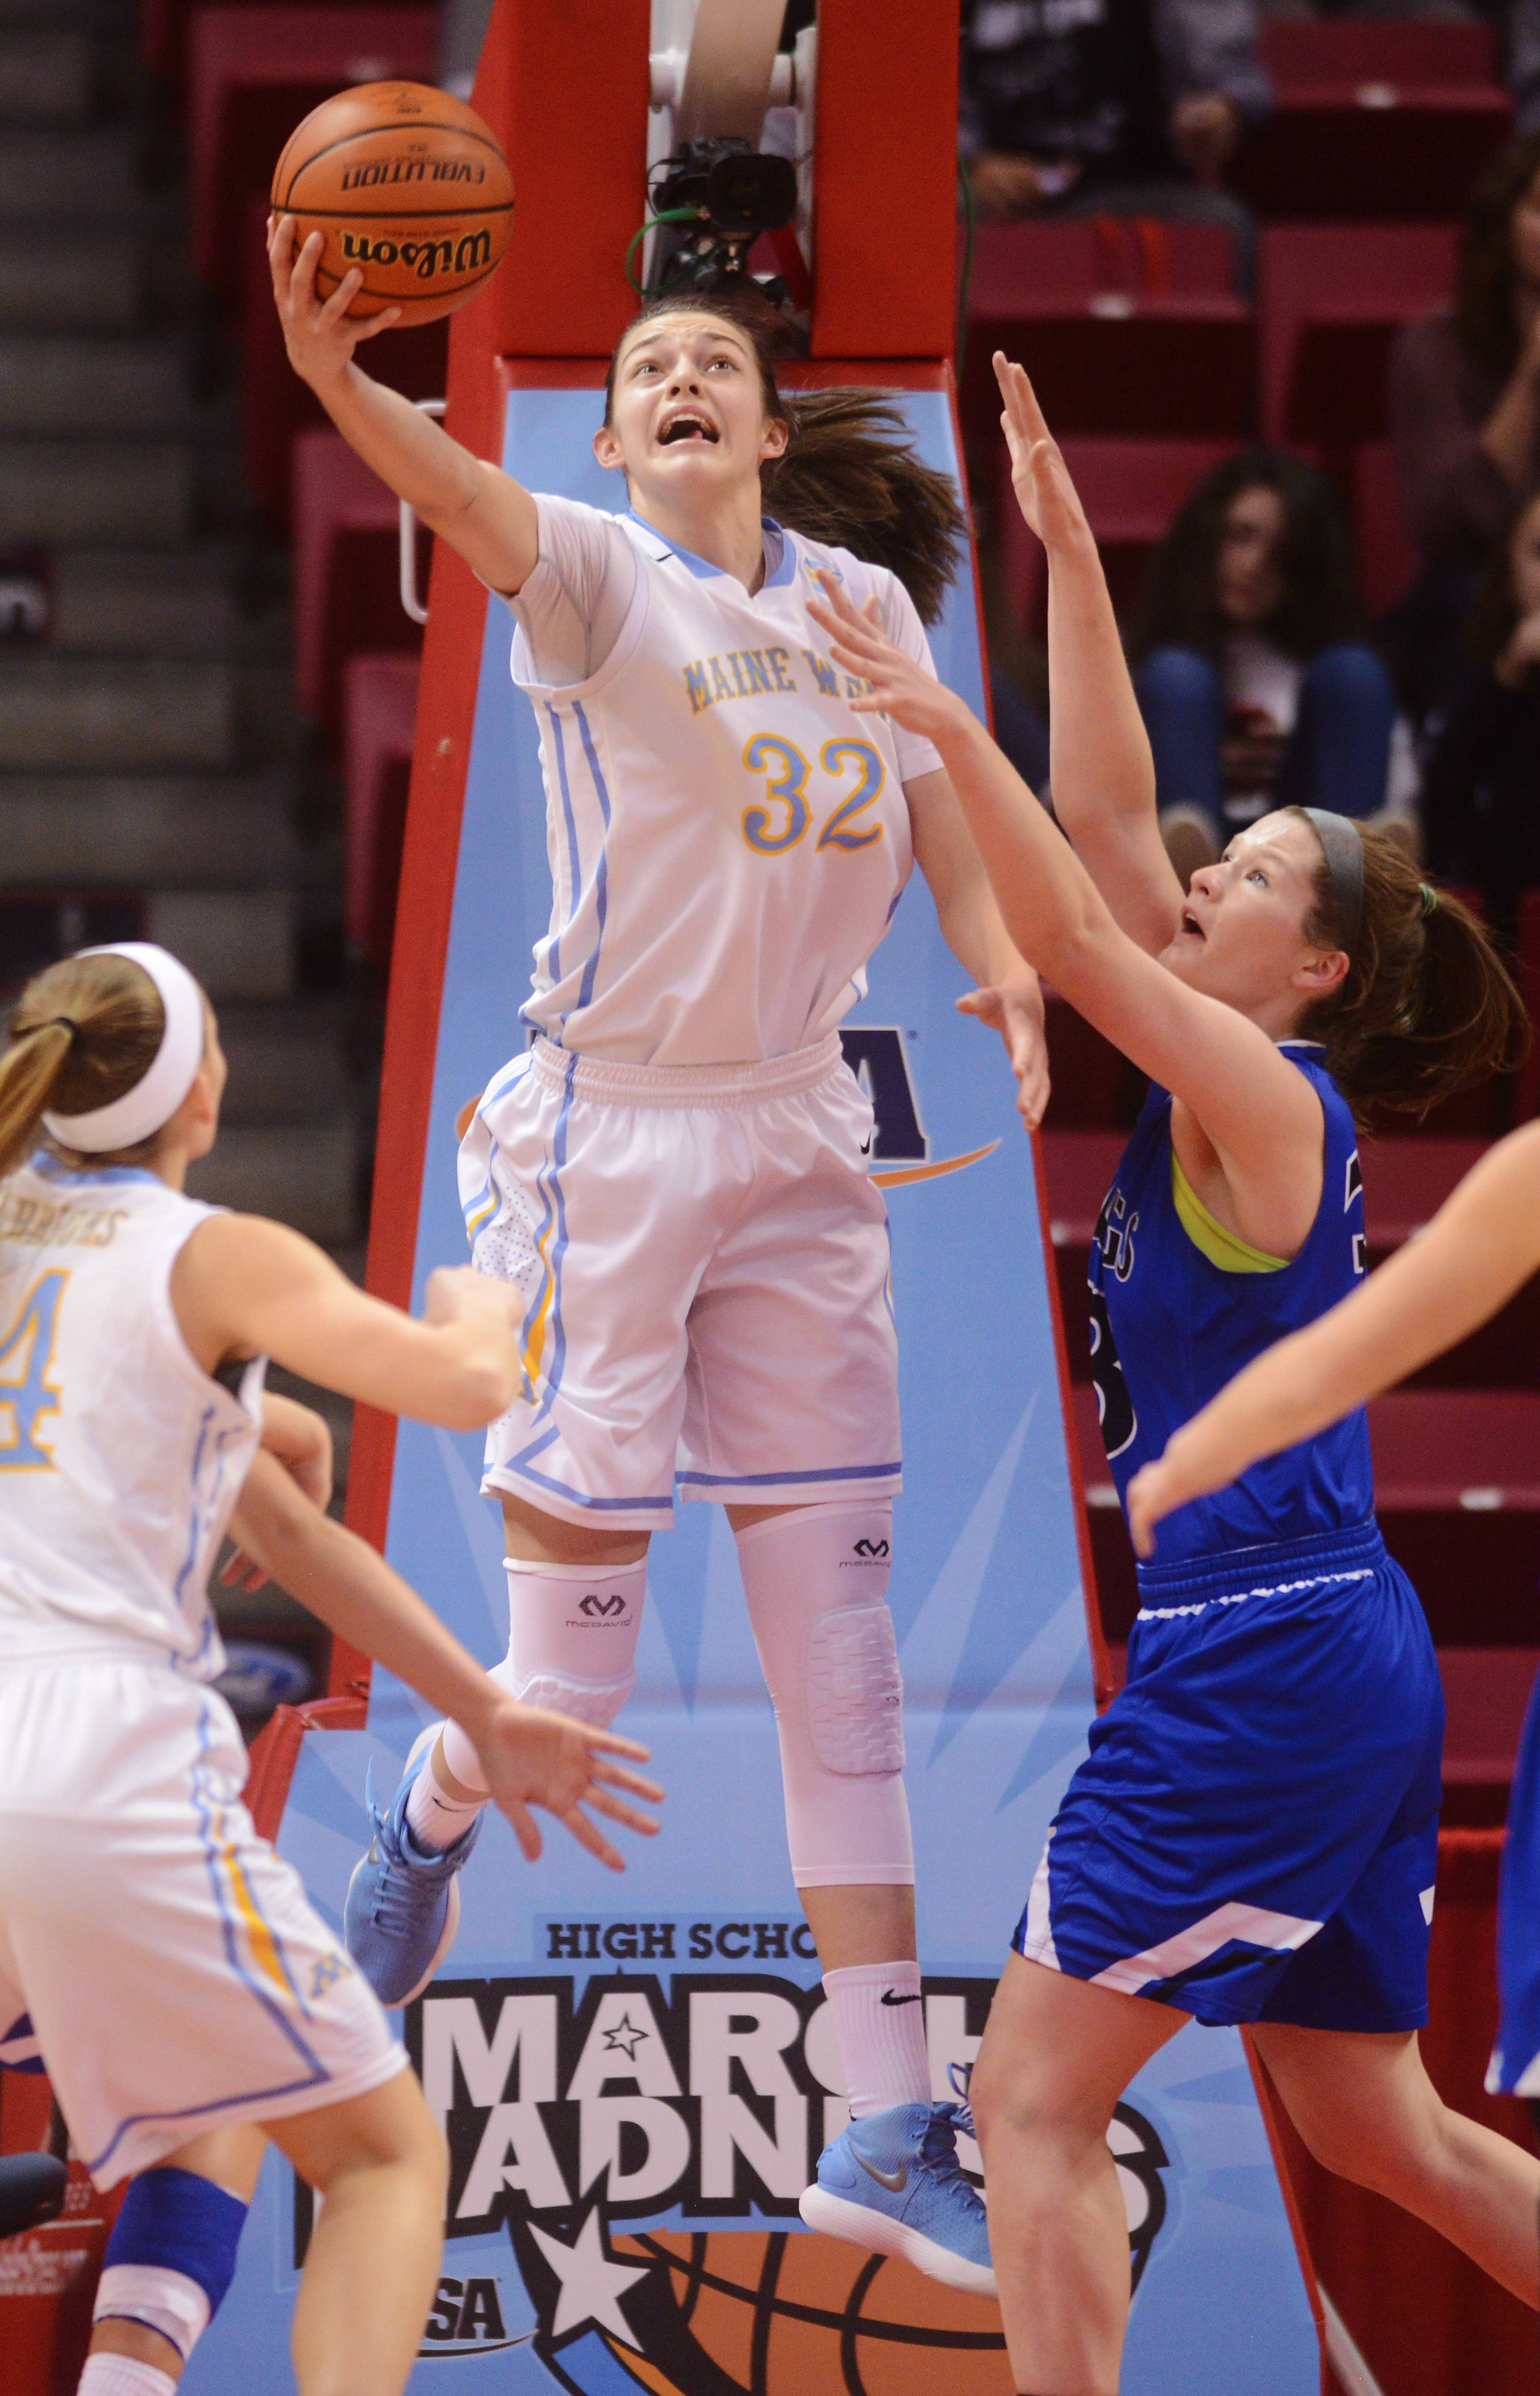 Maine West's Angela Dugalic makes a reverse layup while being guarded by Geneva's Madison Mallory during the Class 4A girls basketball semifinals at Redbird Arena in Normal Friday.